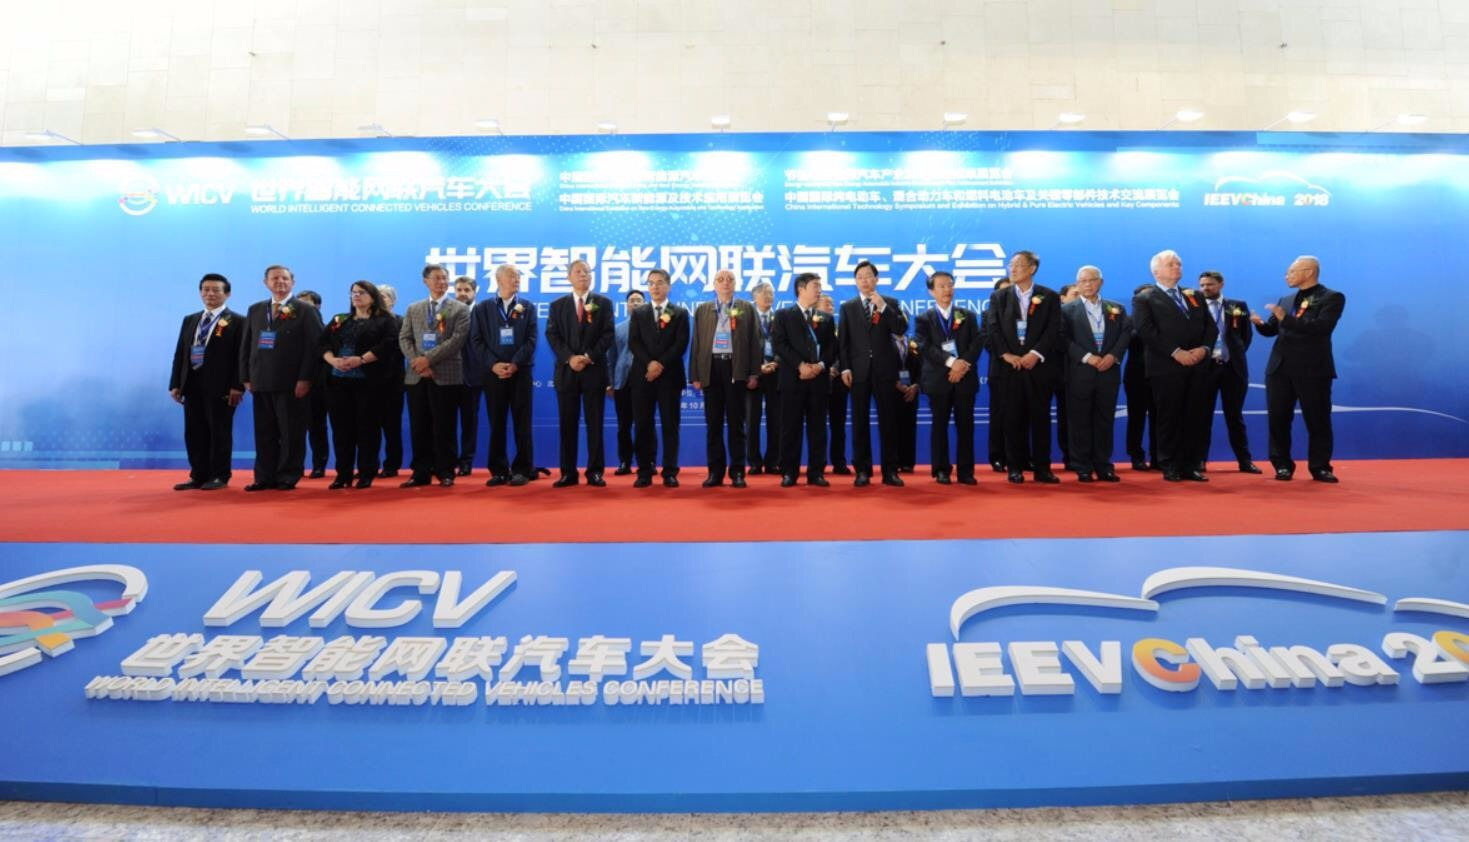 IEEVChina 2018 exhibition opened in Beijing